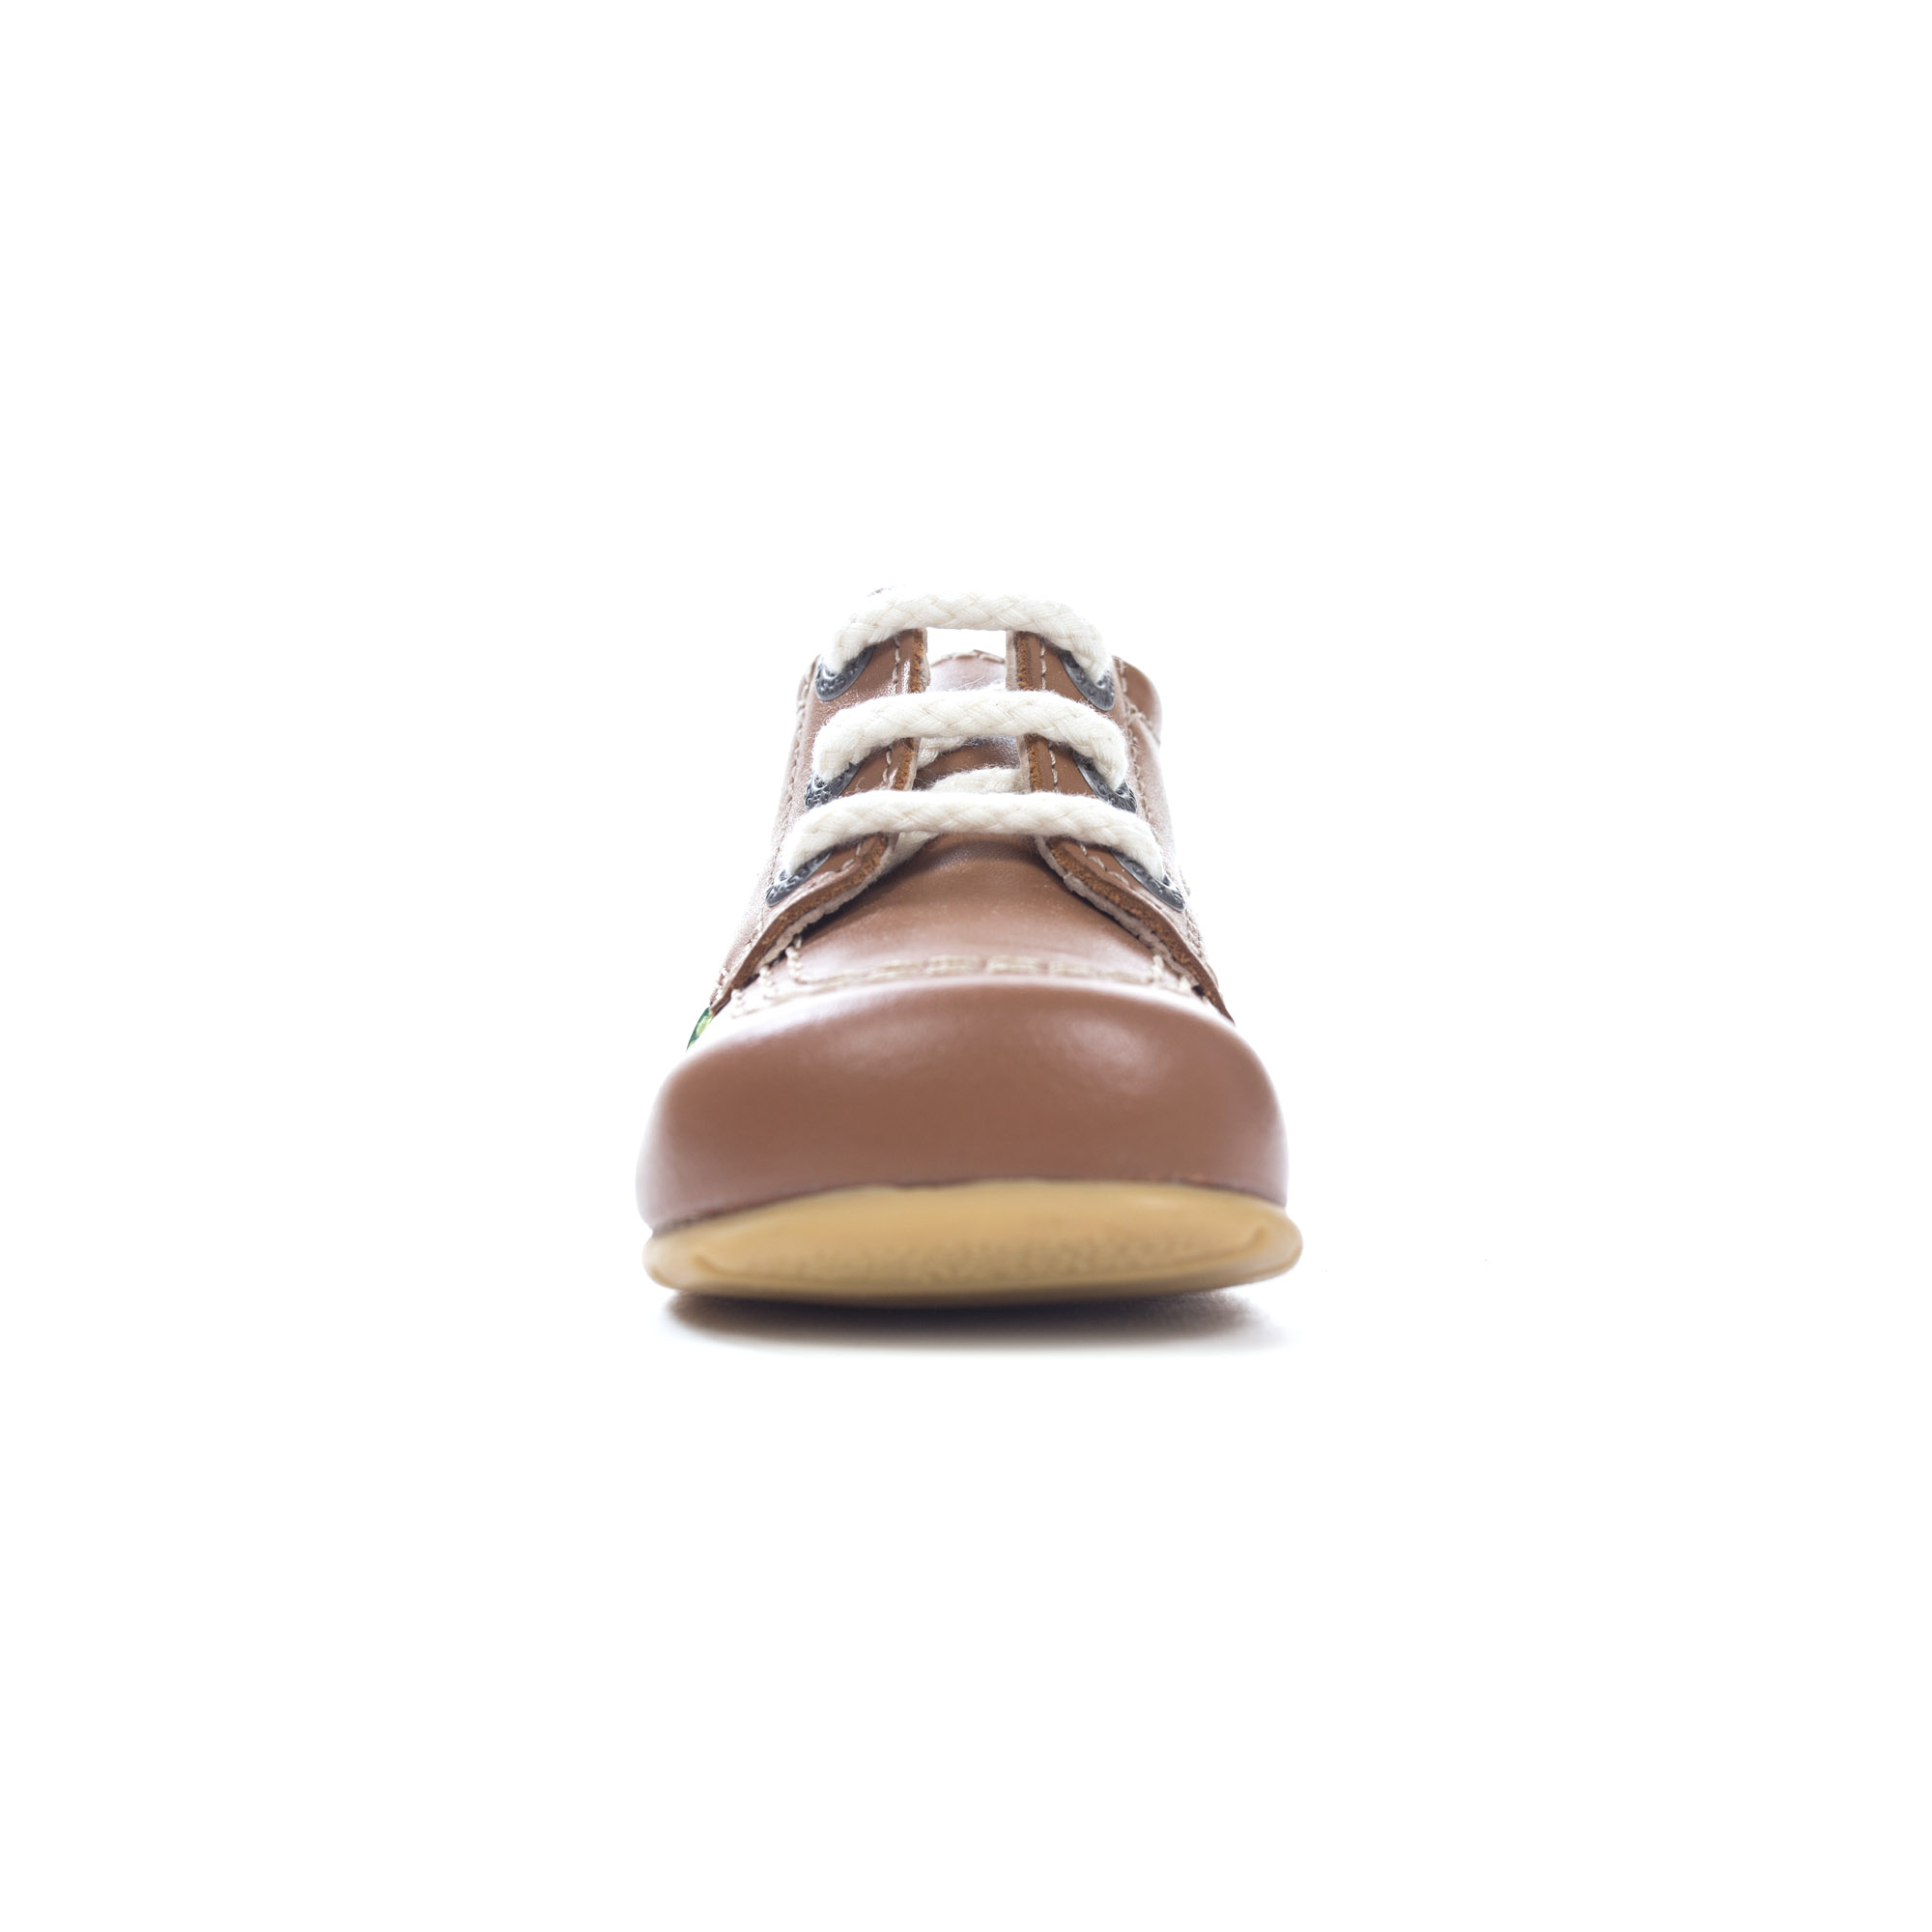 63daaf0363f44 Kickers calci Ciao Baby classico cuoio Toddler Infant Kids scarpe Boot Tan